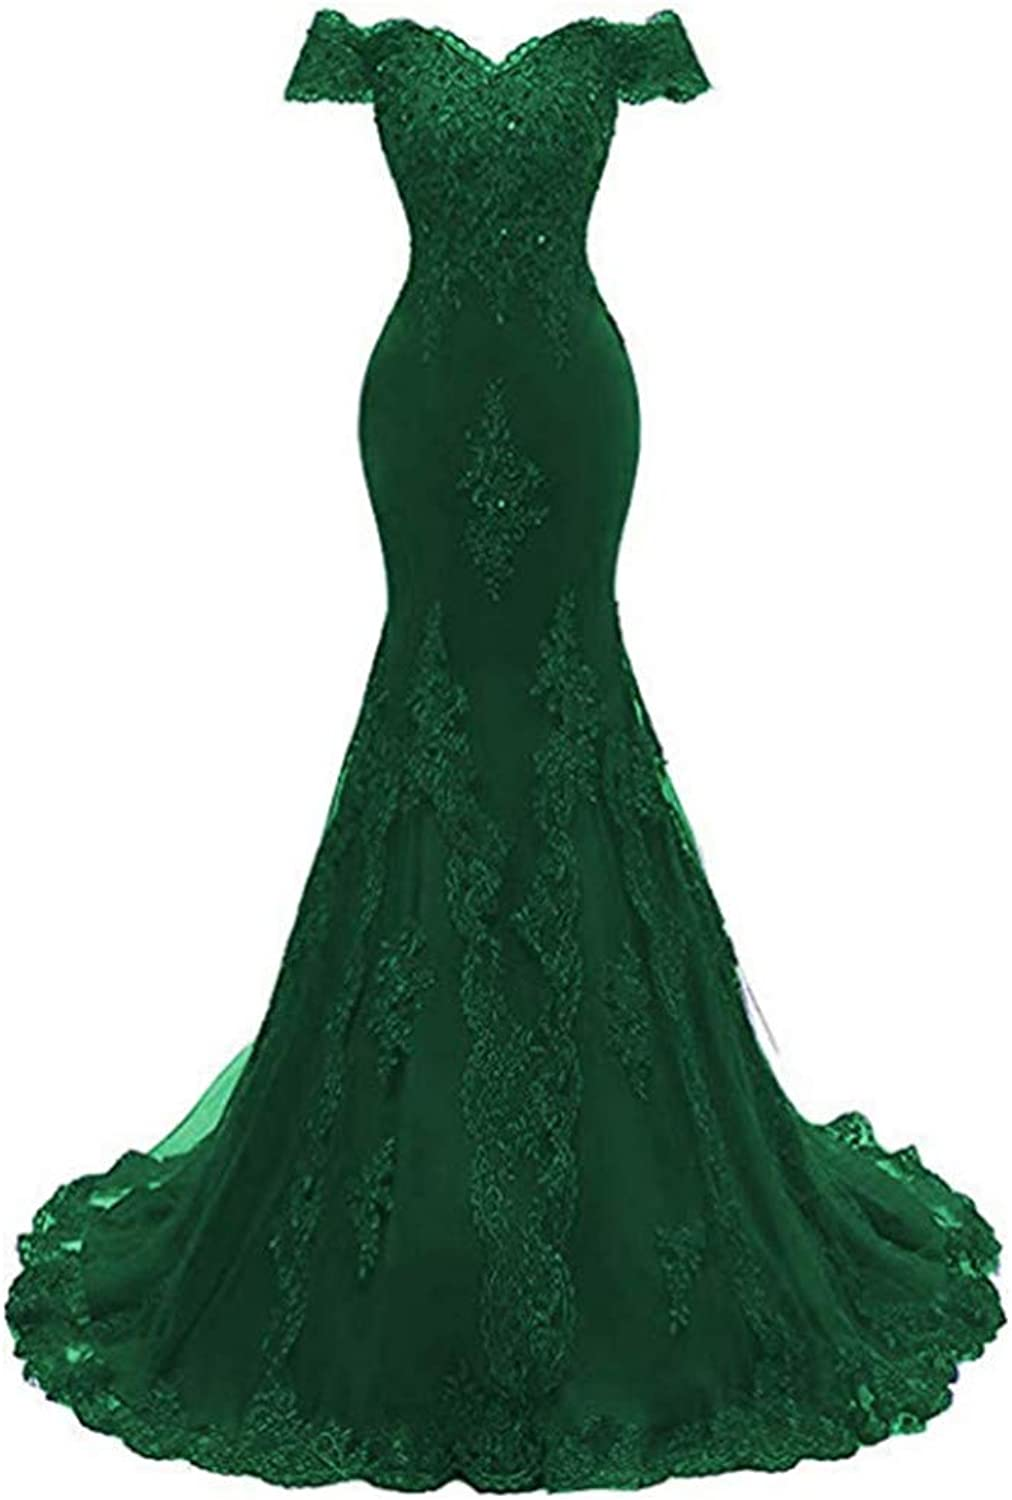 Ai Maria Women's Shoulder 0ff Beaded Evening Gowns Mermaid Lace Prom Dresse